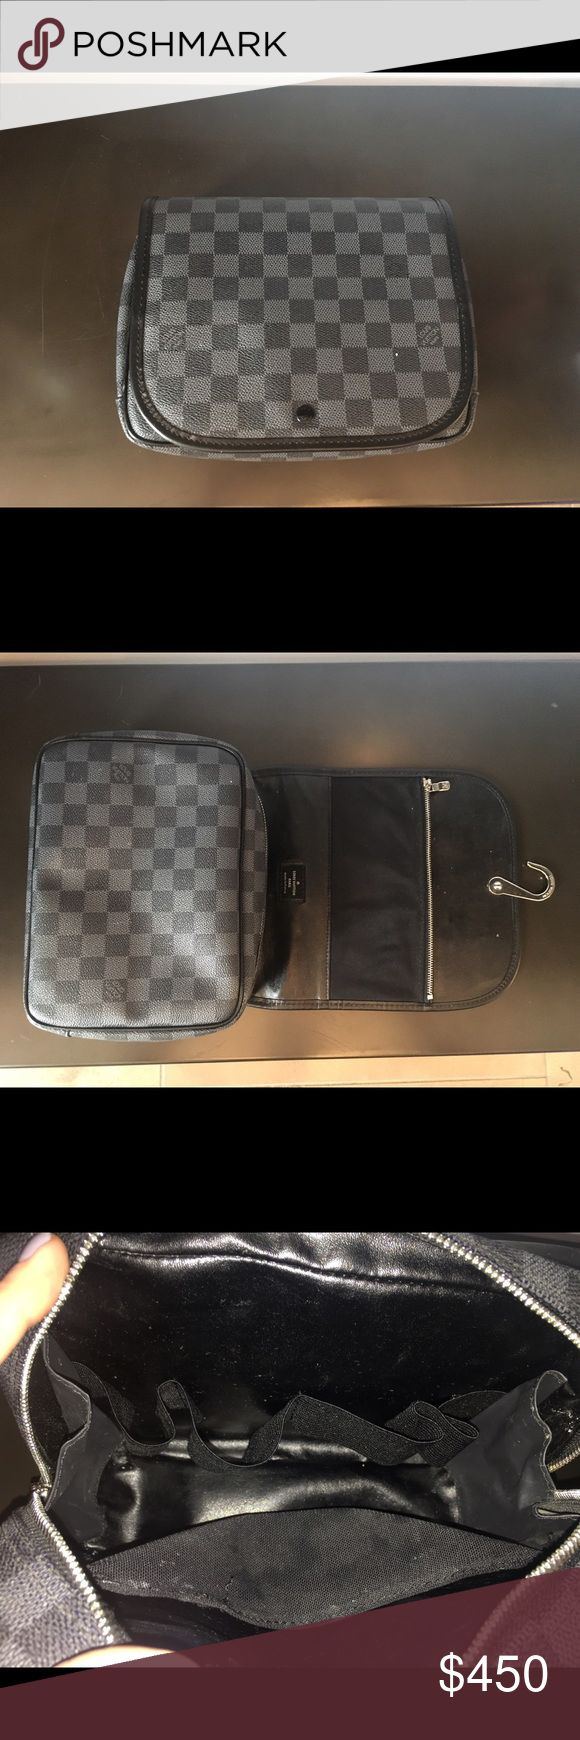 Louis Vuitton Toiletry Case Black and grey checker print zippered toiletry case with hanger Louis Vuitton Bags Cosmetic Bags & Cases